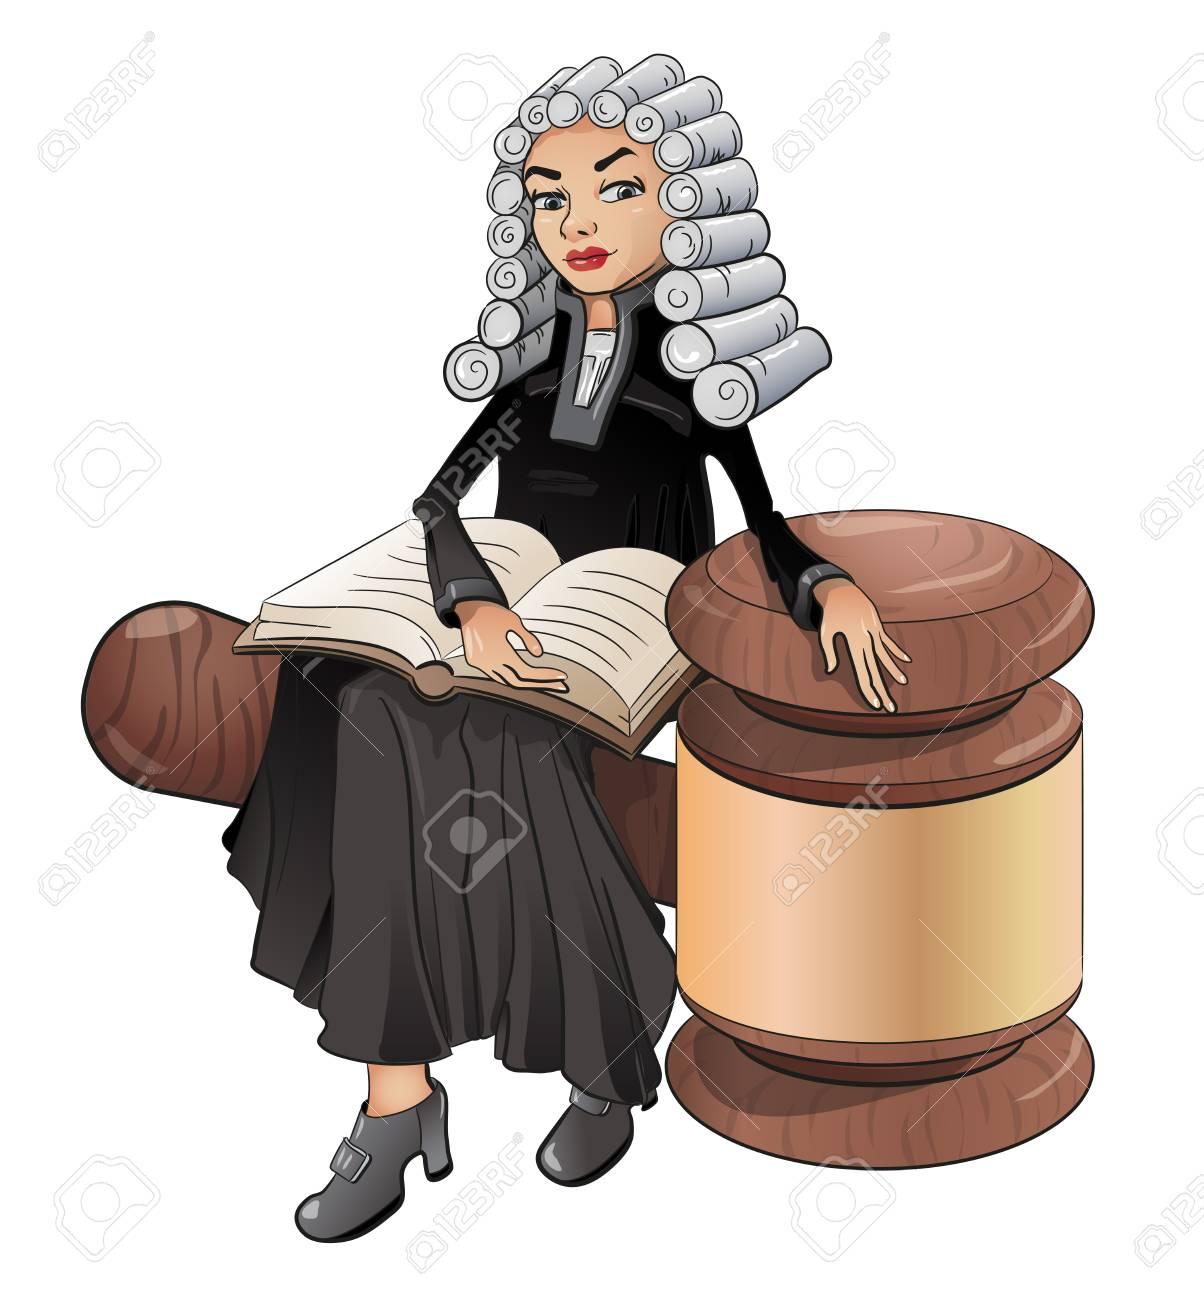 a judge is a